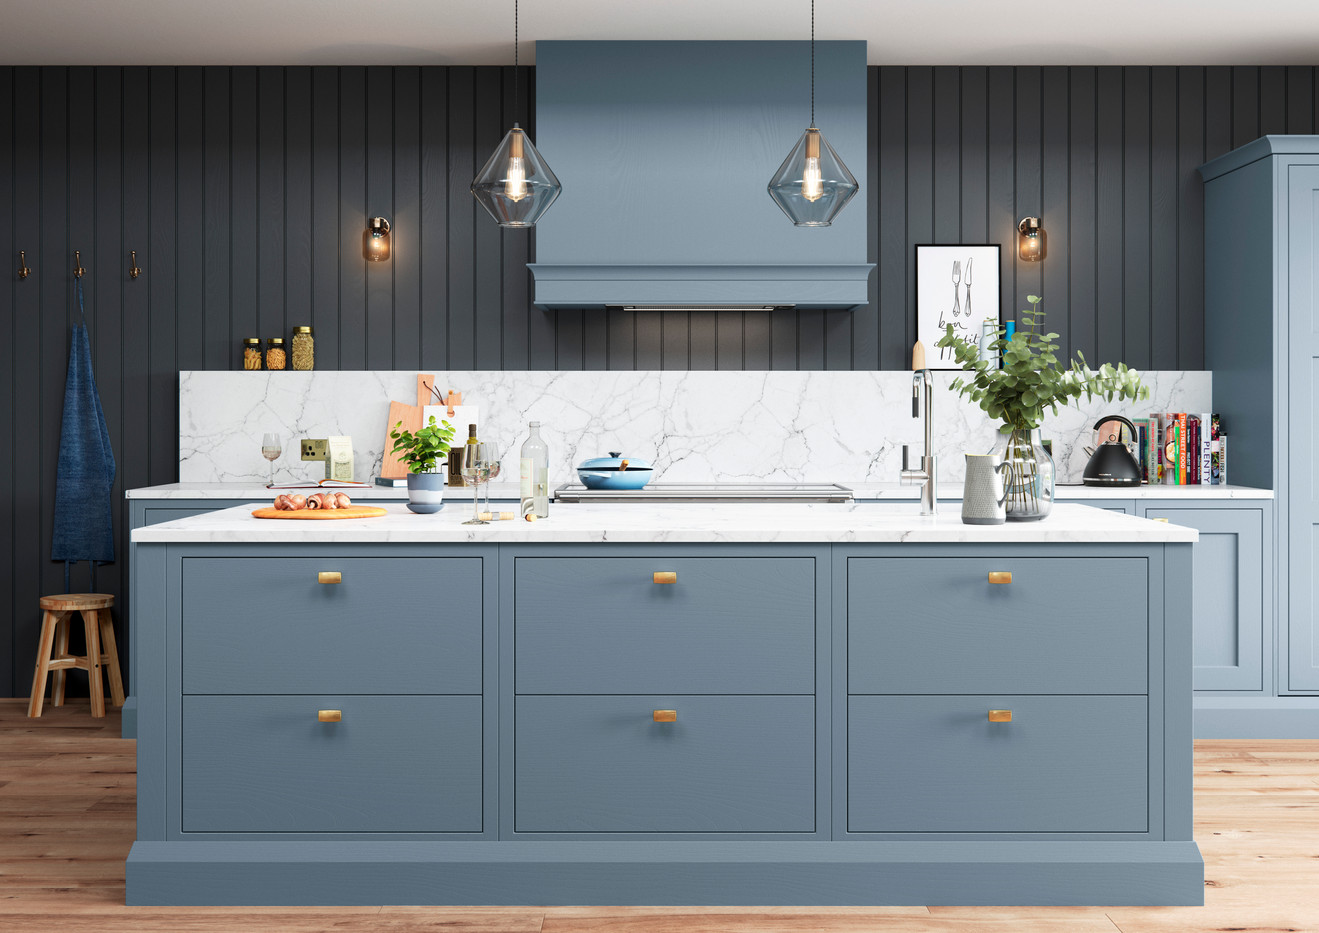 Baystone Stone Blue with PH12 handles Ca